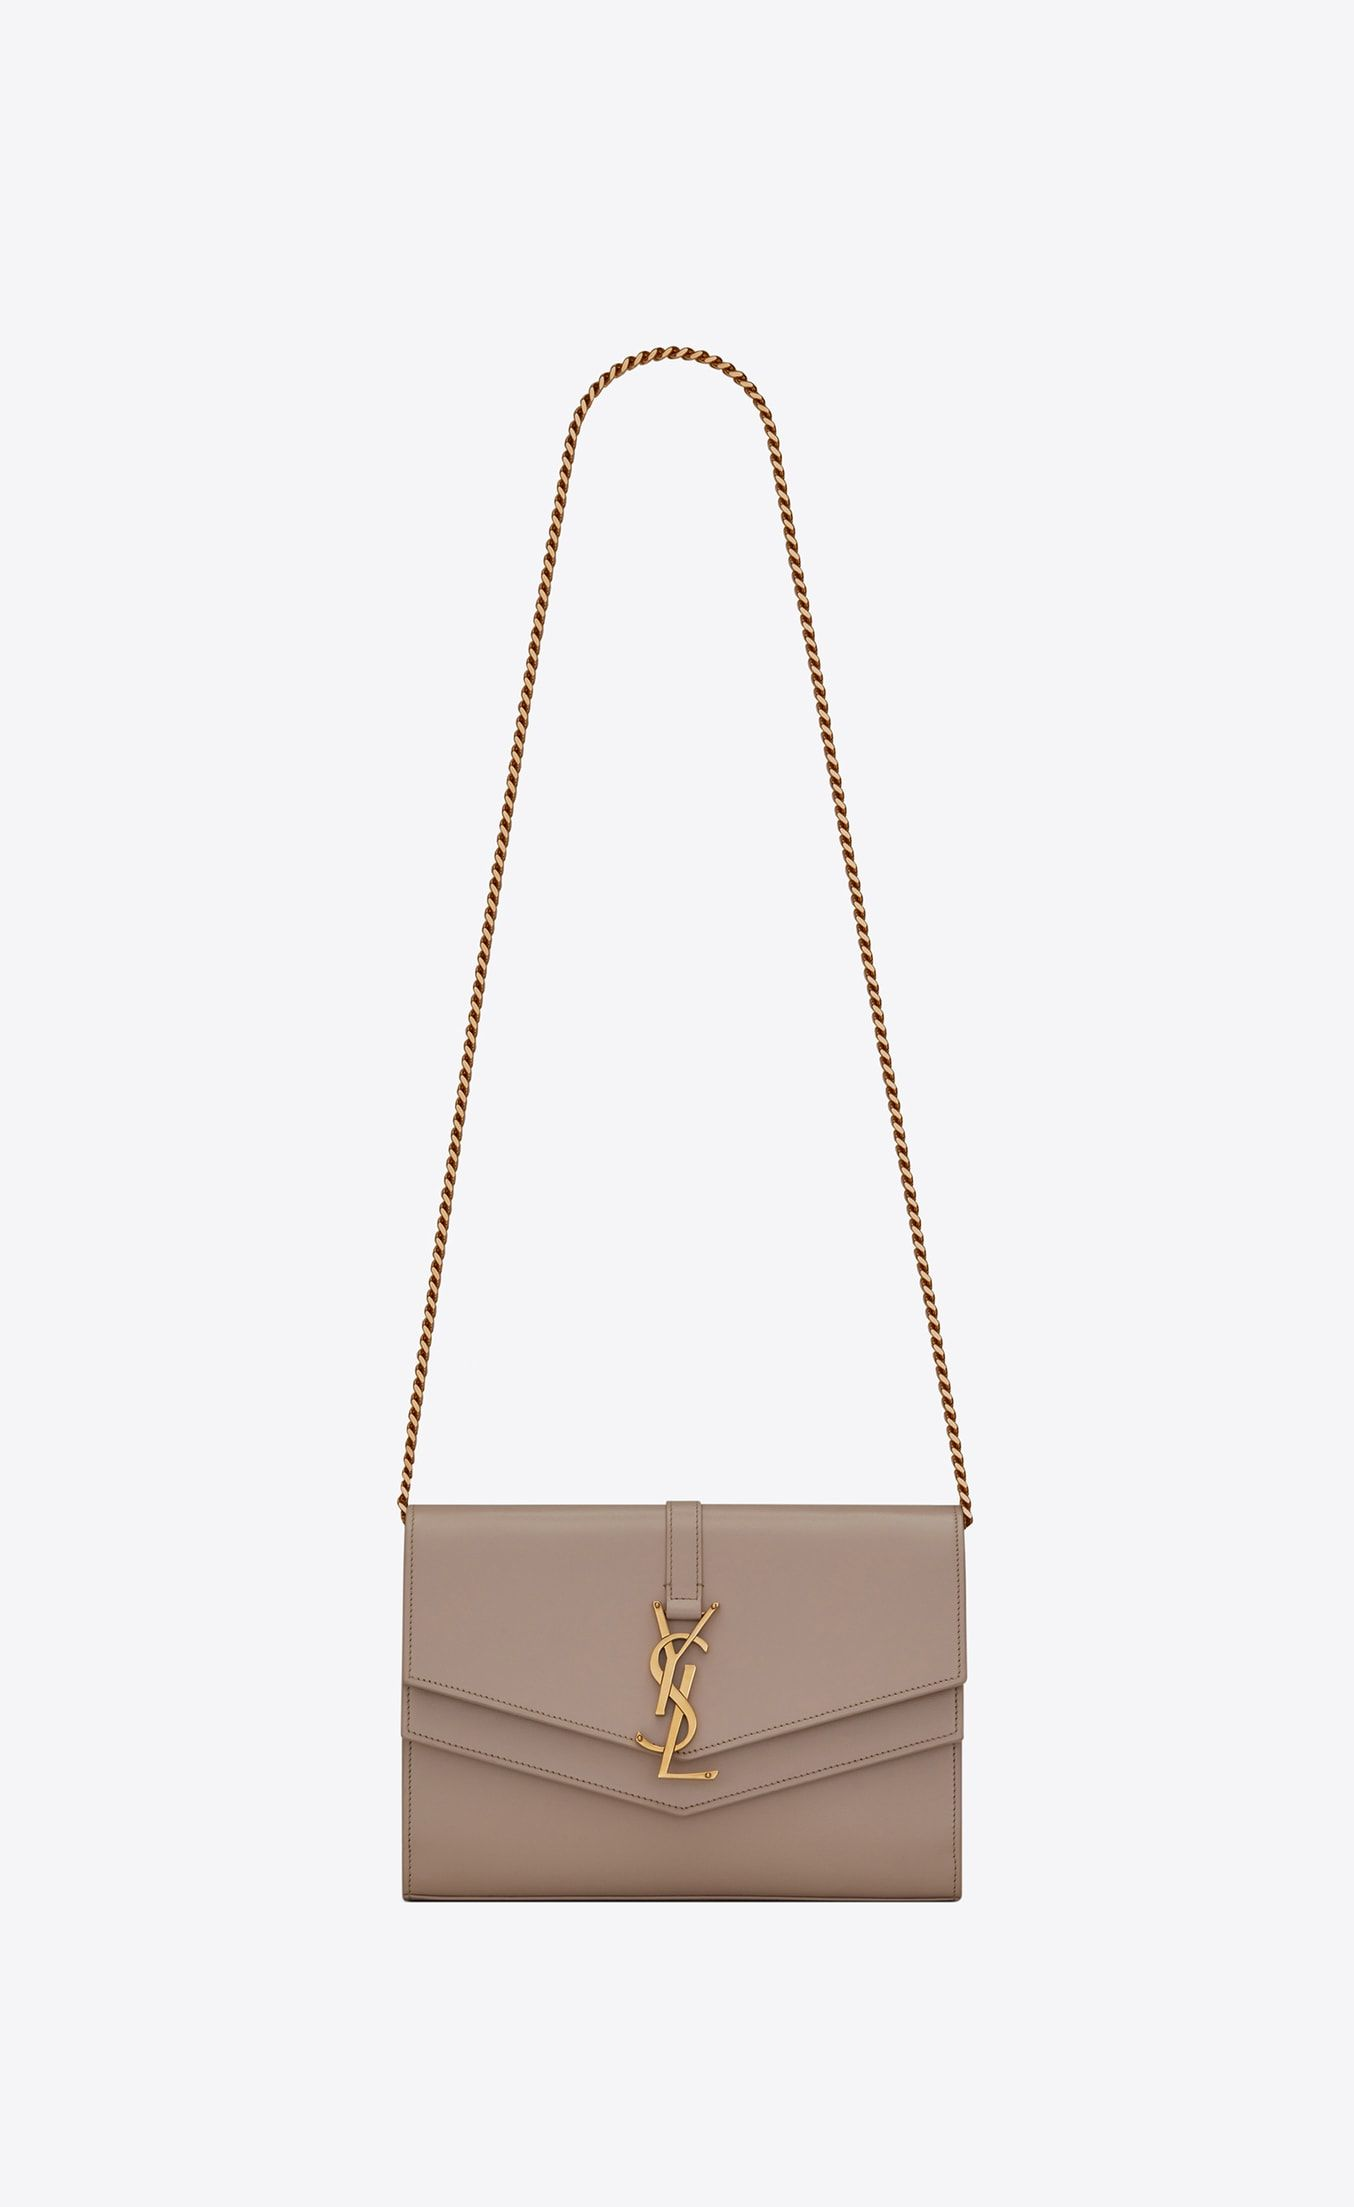 c25cda8f260 Sulpice chain wallet in smooth leather in 2019 | purses | Wallet ...